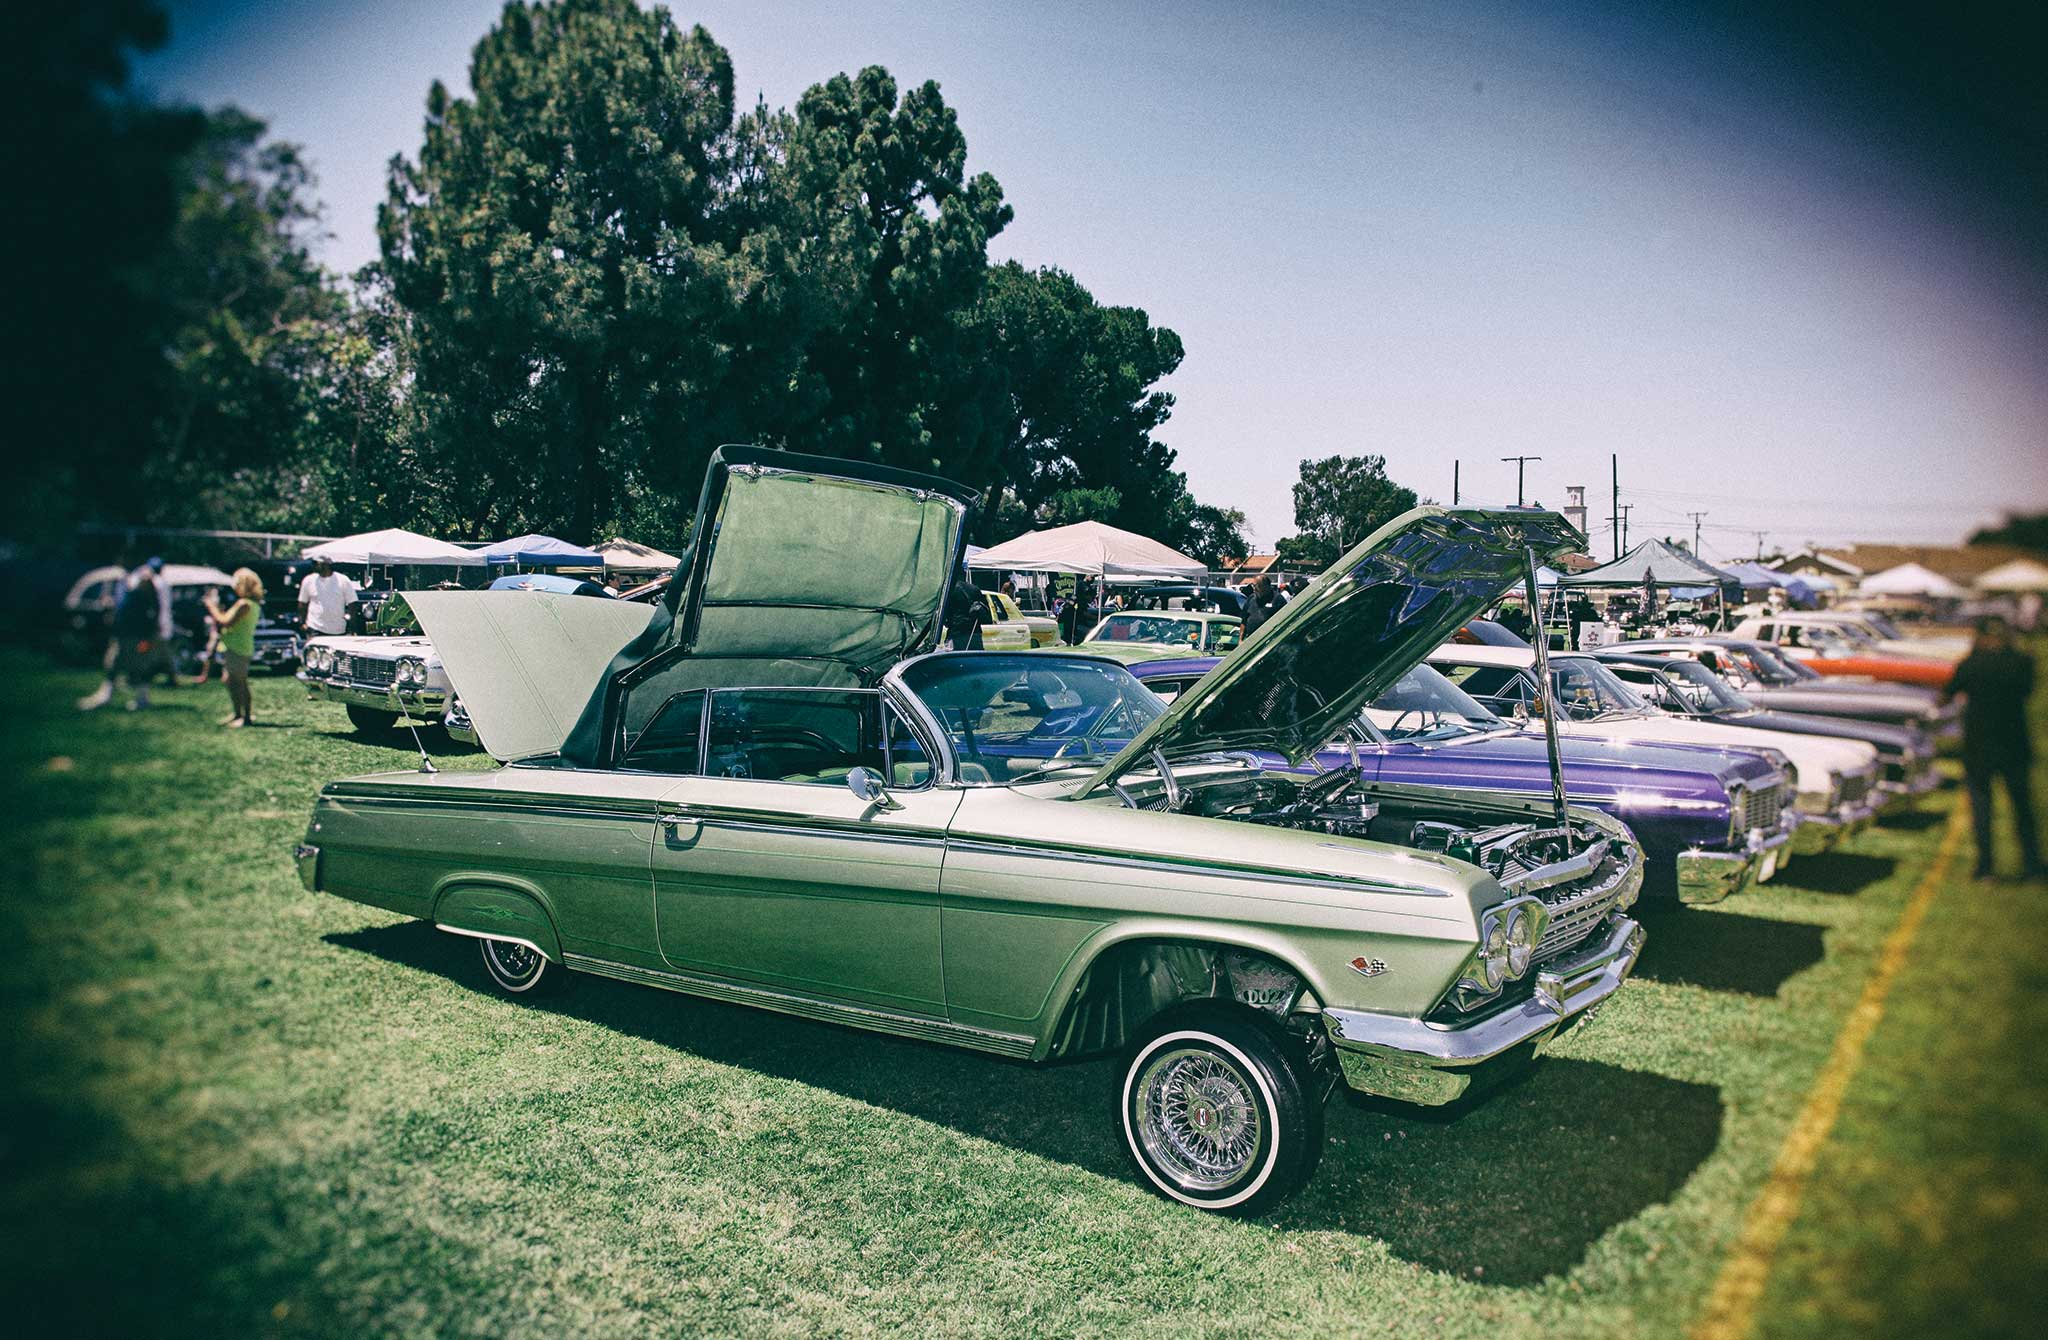 006 13th annual imperials car show and concert impala